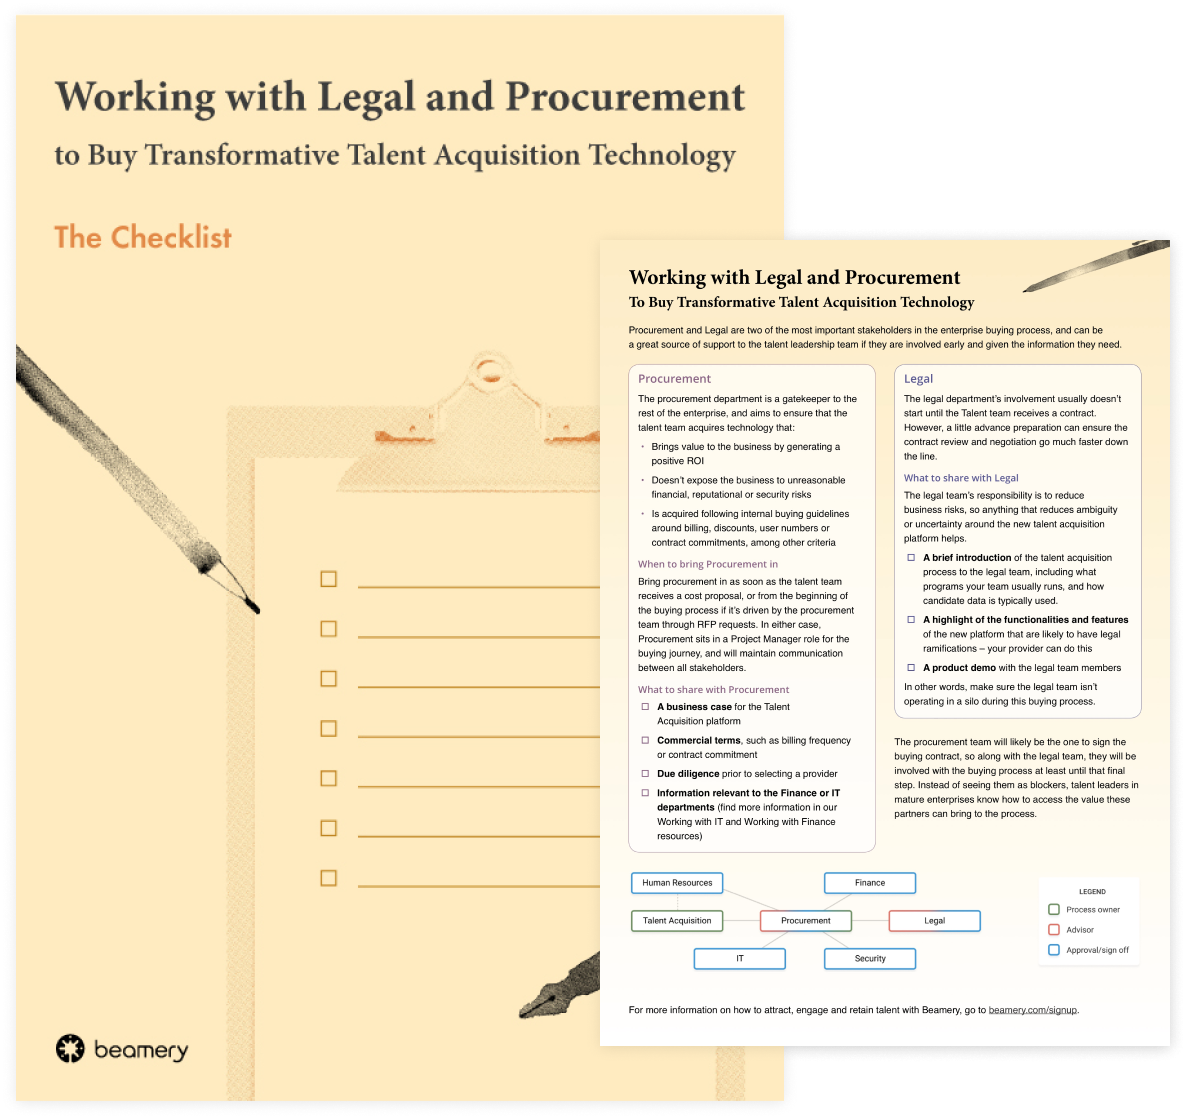 Working with Legal and Procurement to Buy Transformative Talent Acquisition Technology image